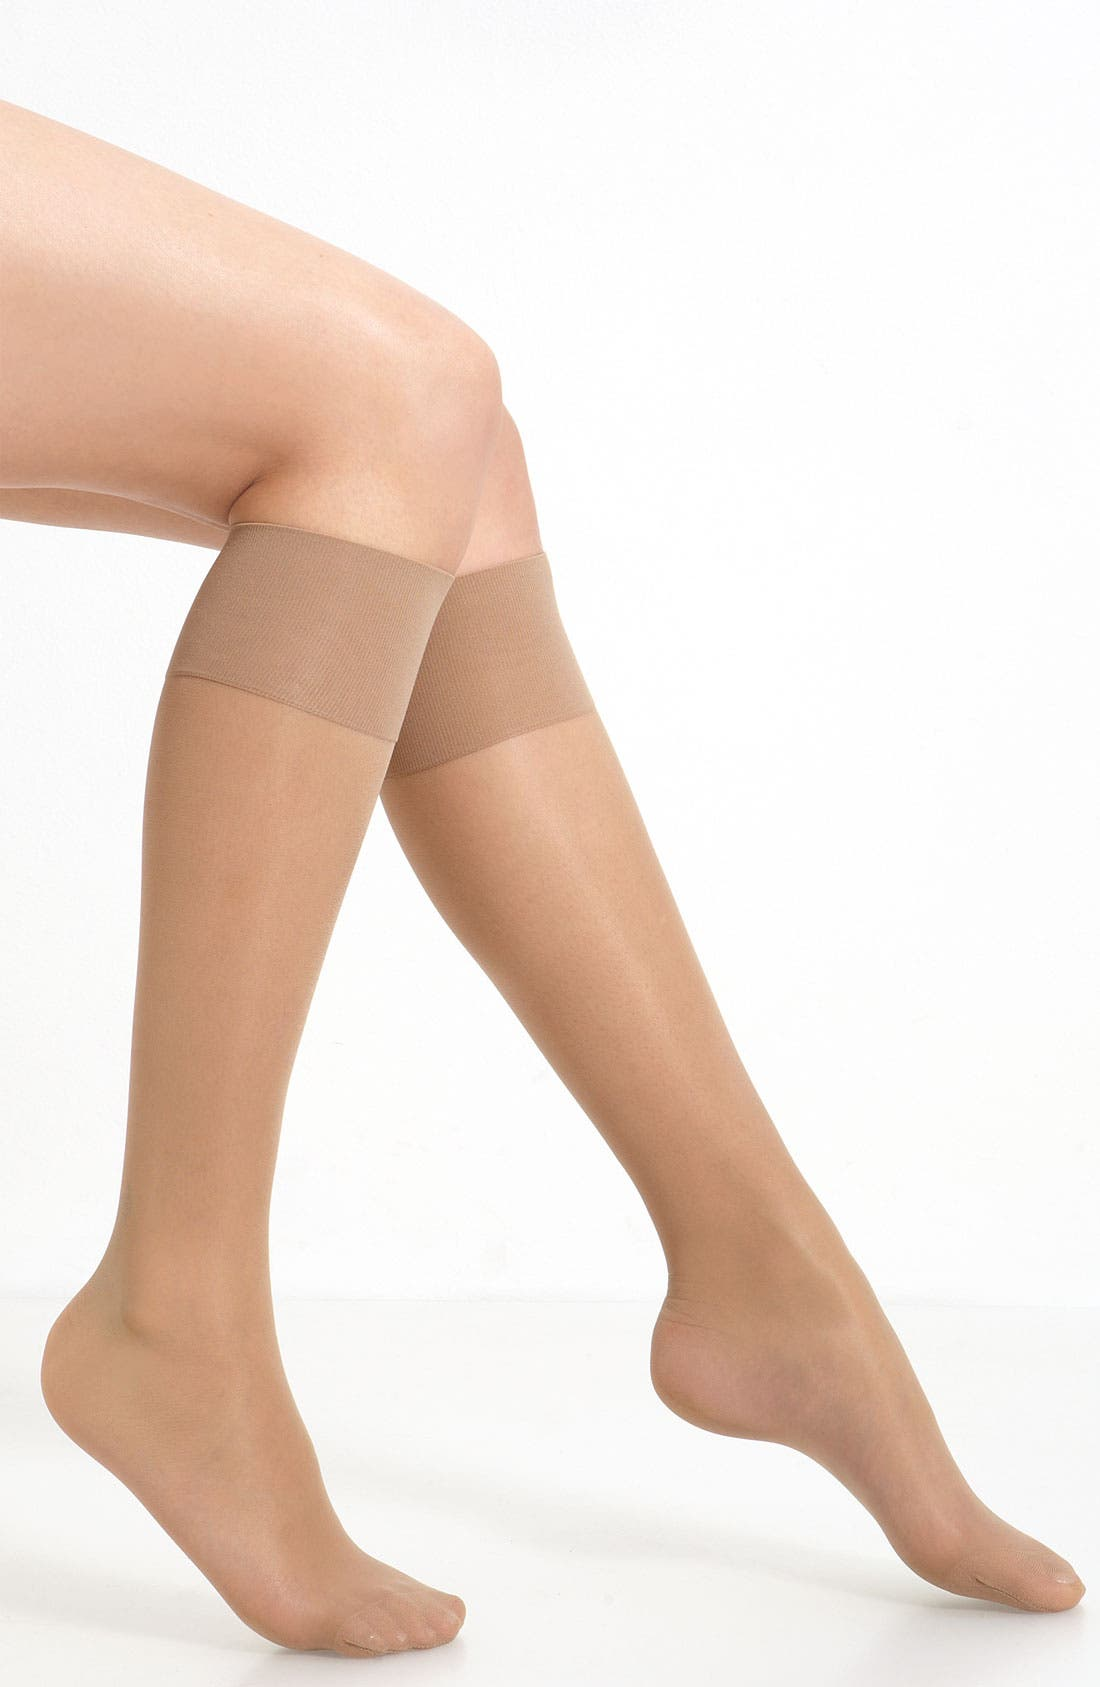 Main Image - Oroblu 'Mi-Bas Repos 70' Sheer Support Knee Highs